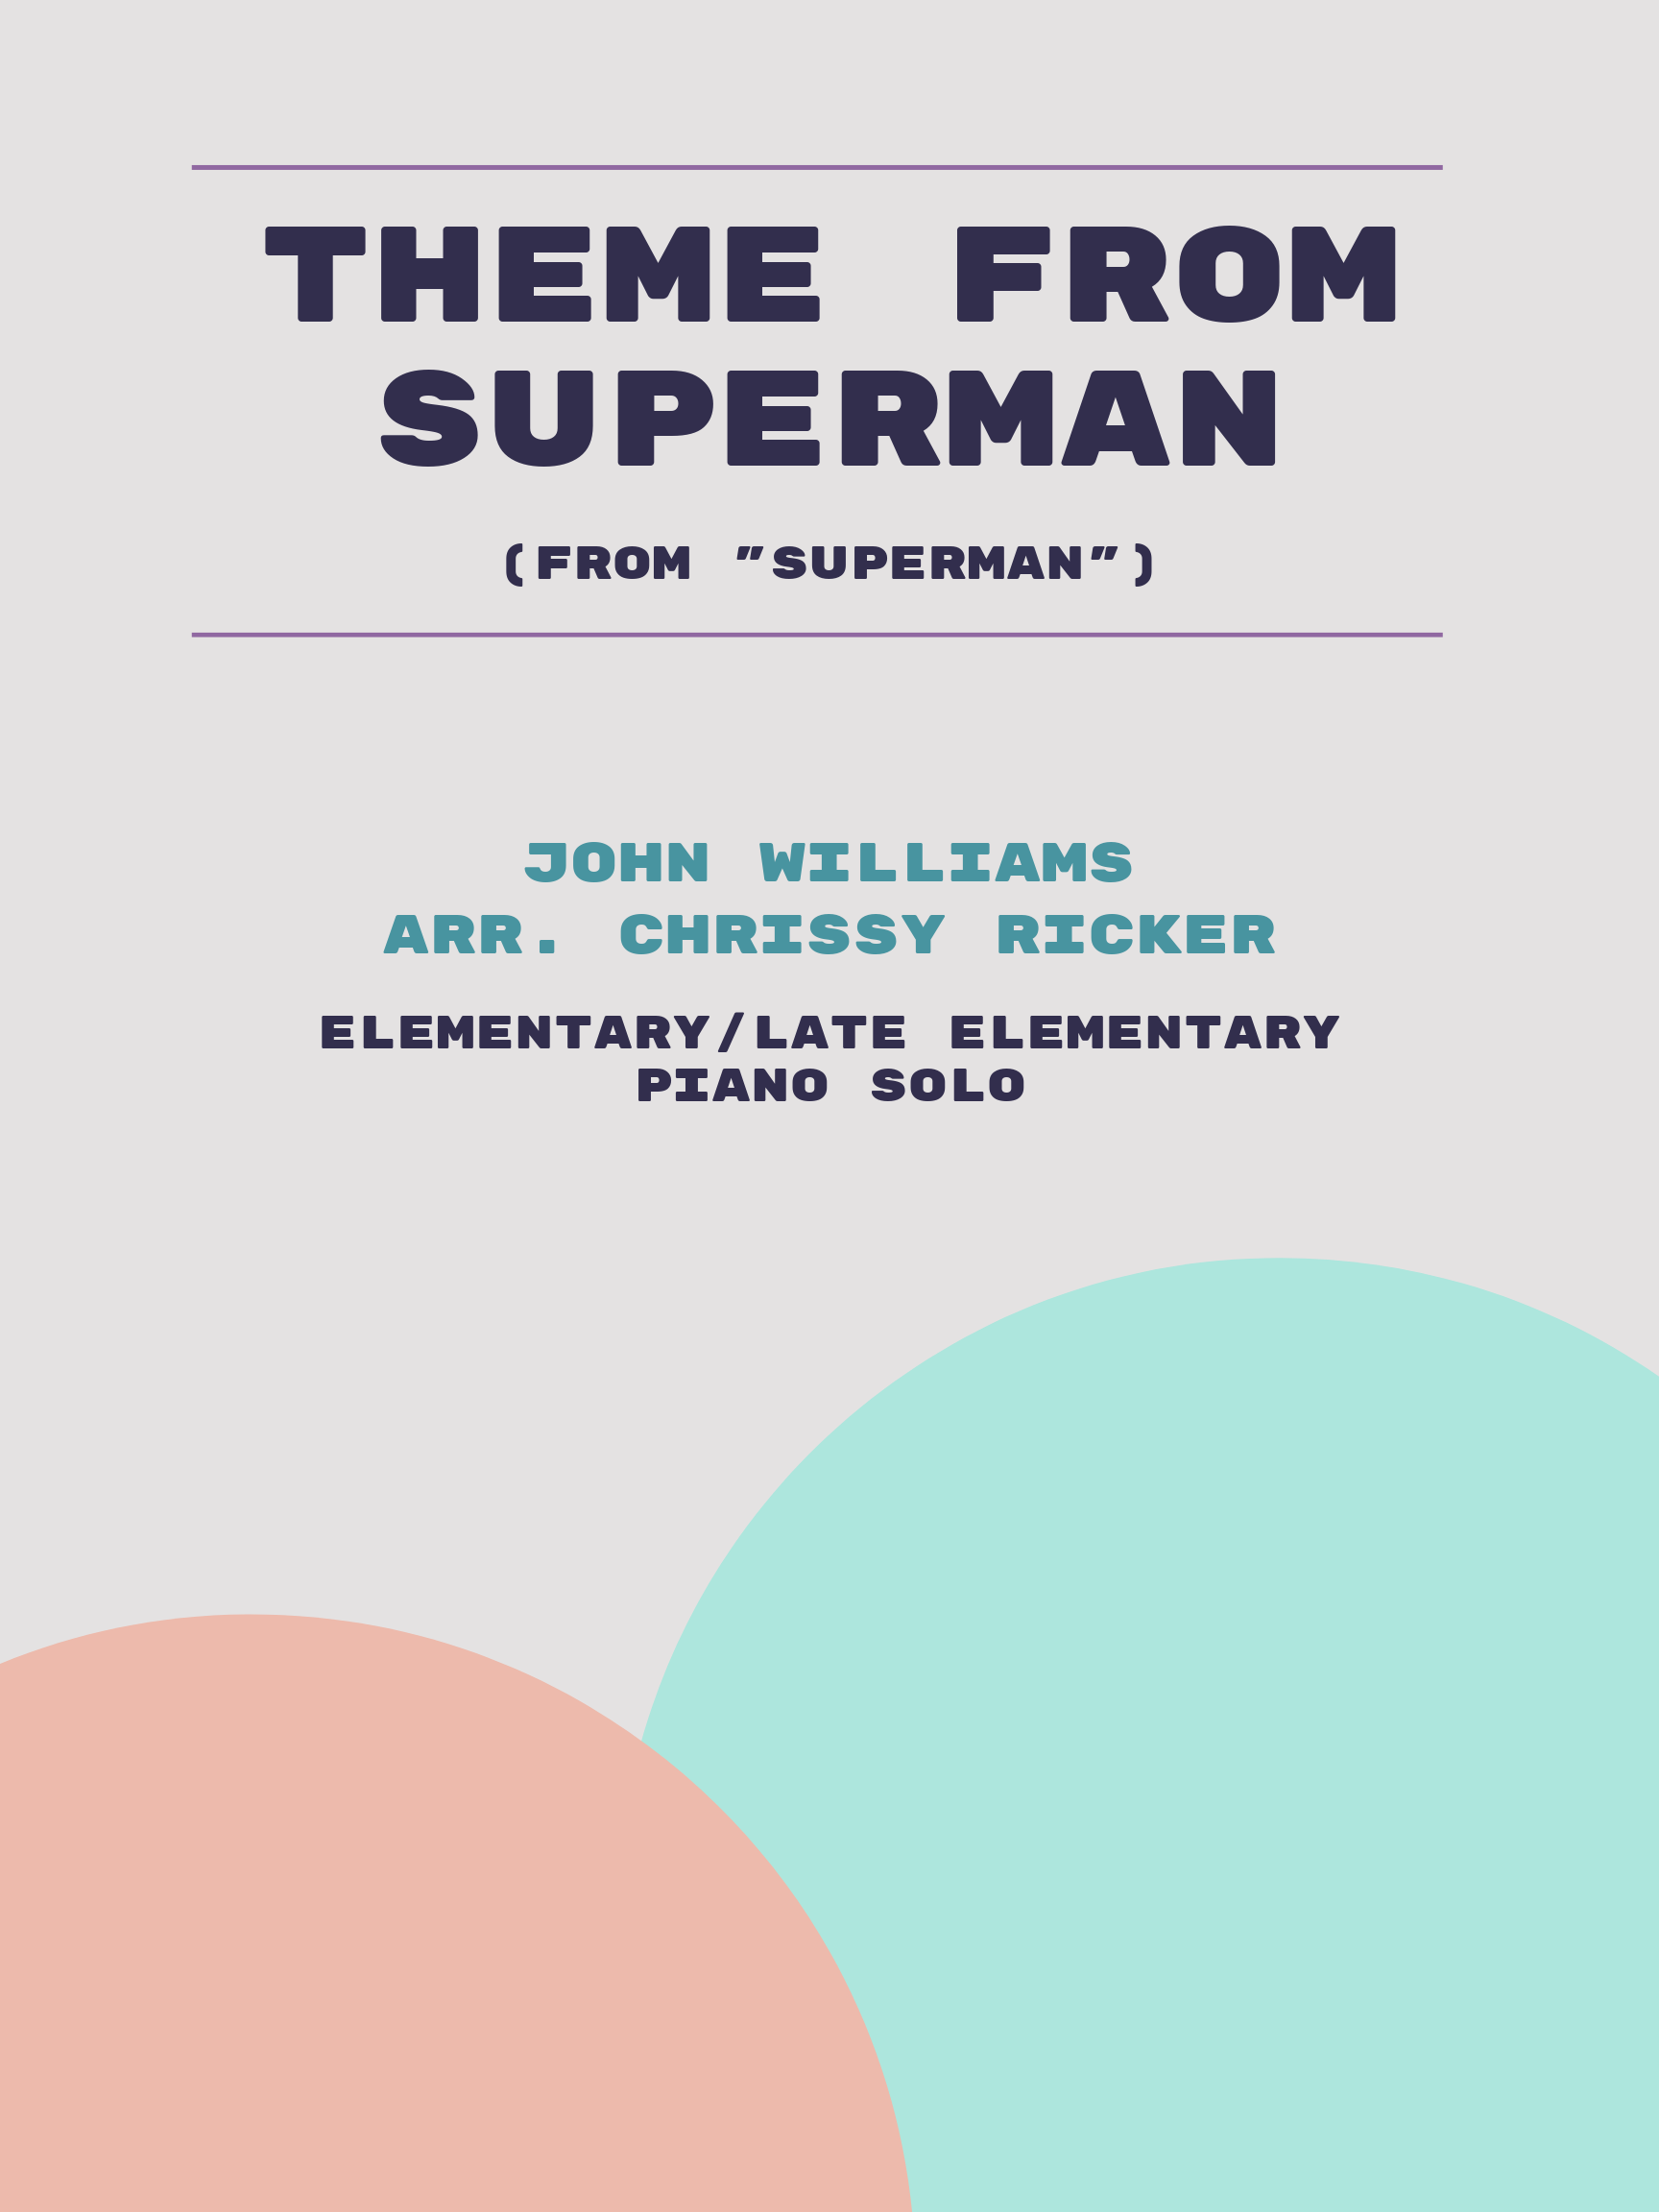 Theme from Superman by John Williams